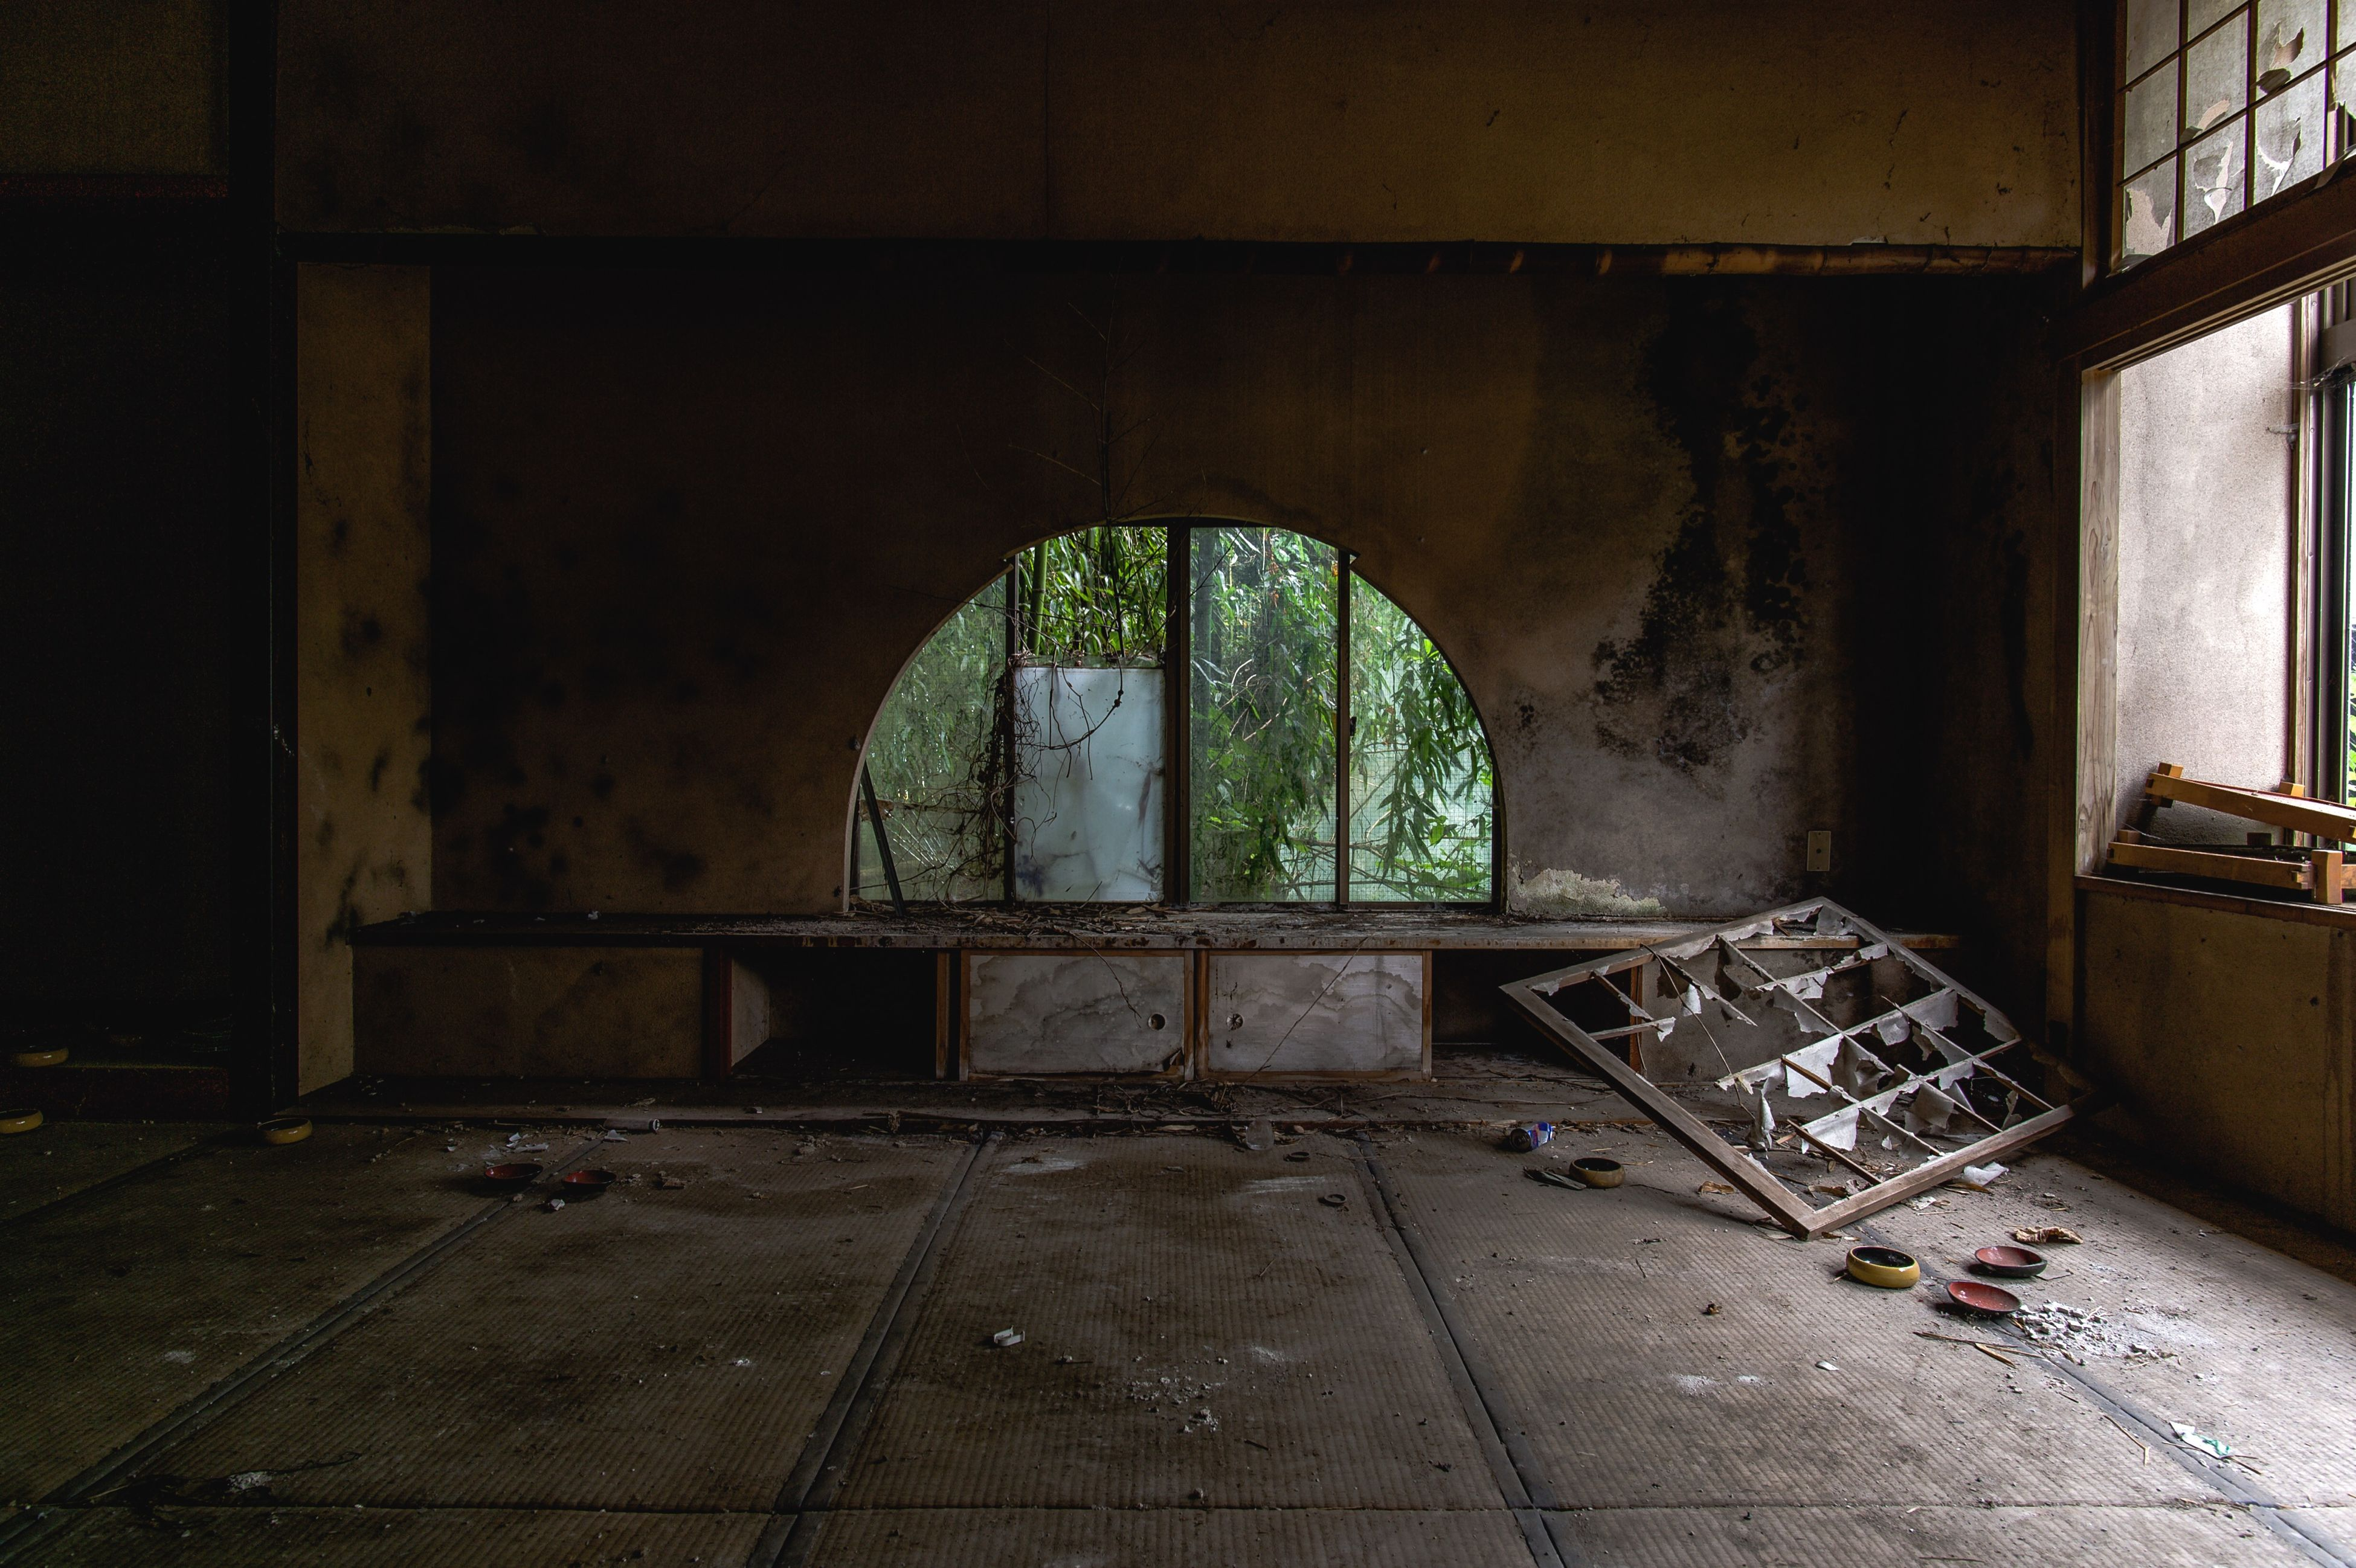 architecture, built structure, indoors, abandoned, old, wall - building feature, obsolete, building exterior, damaged, arch, deterioration, building, run-down, interior, weathered, no people, wall, day, window, door